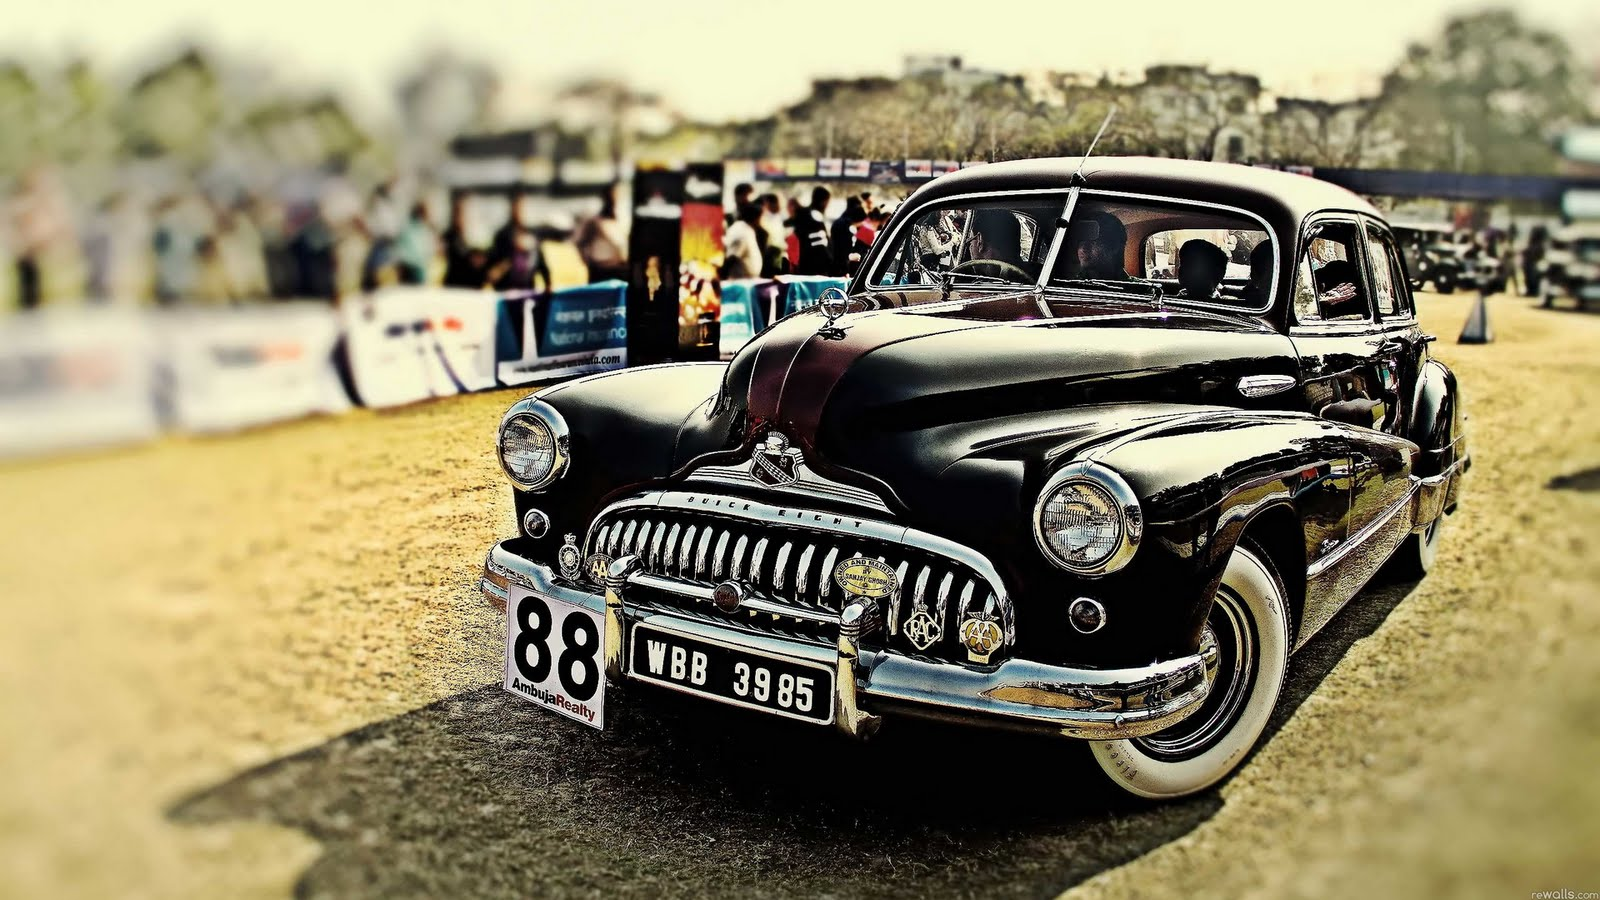 Retro Buick Right reconditioned HD Wallpaper The Wallpaper Database 1600x900